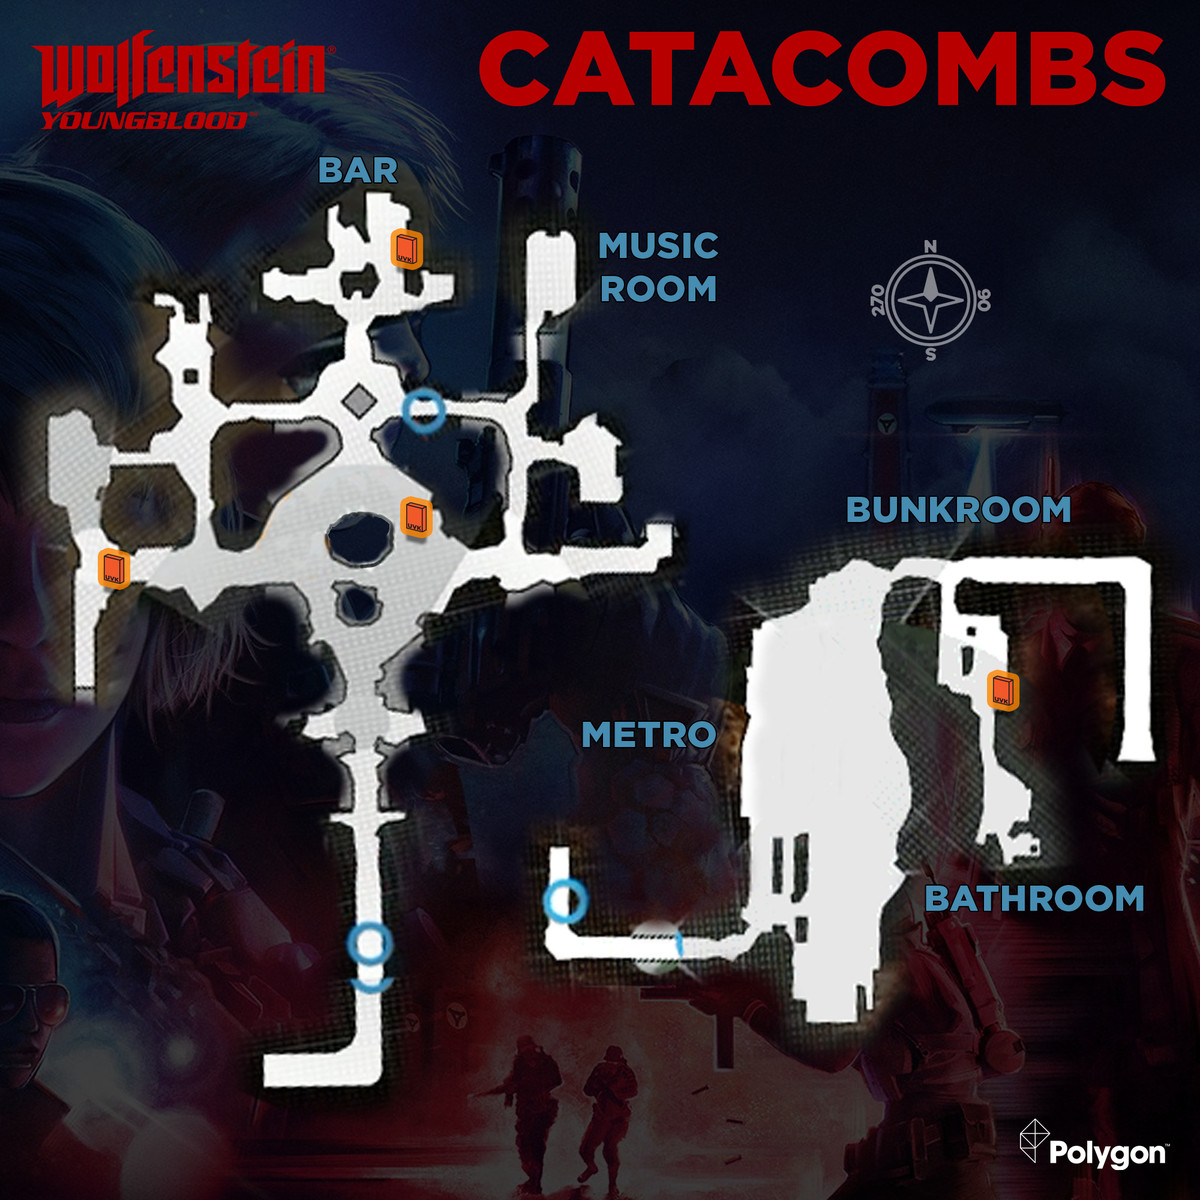 Youngblood UVK cover collectible locations map